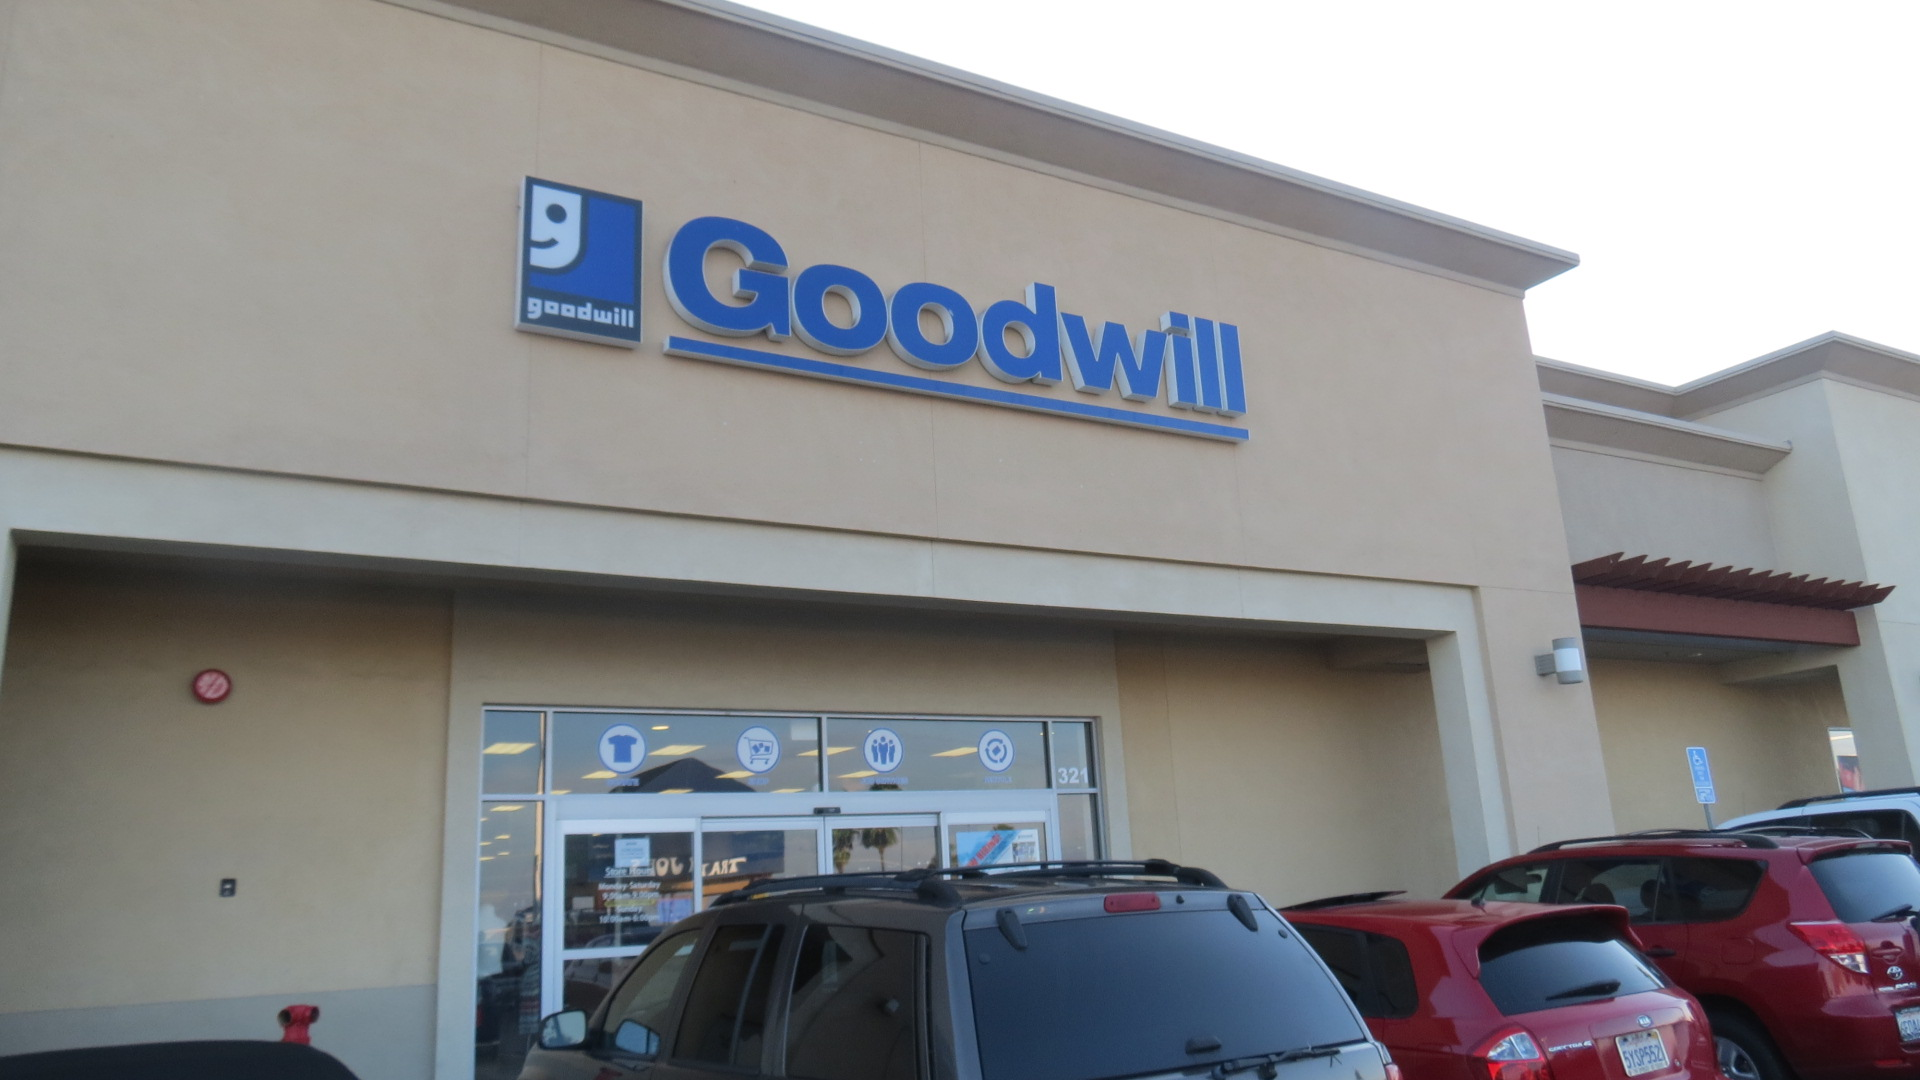 RPV Goodwill Retail Store & Donation Center